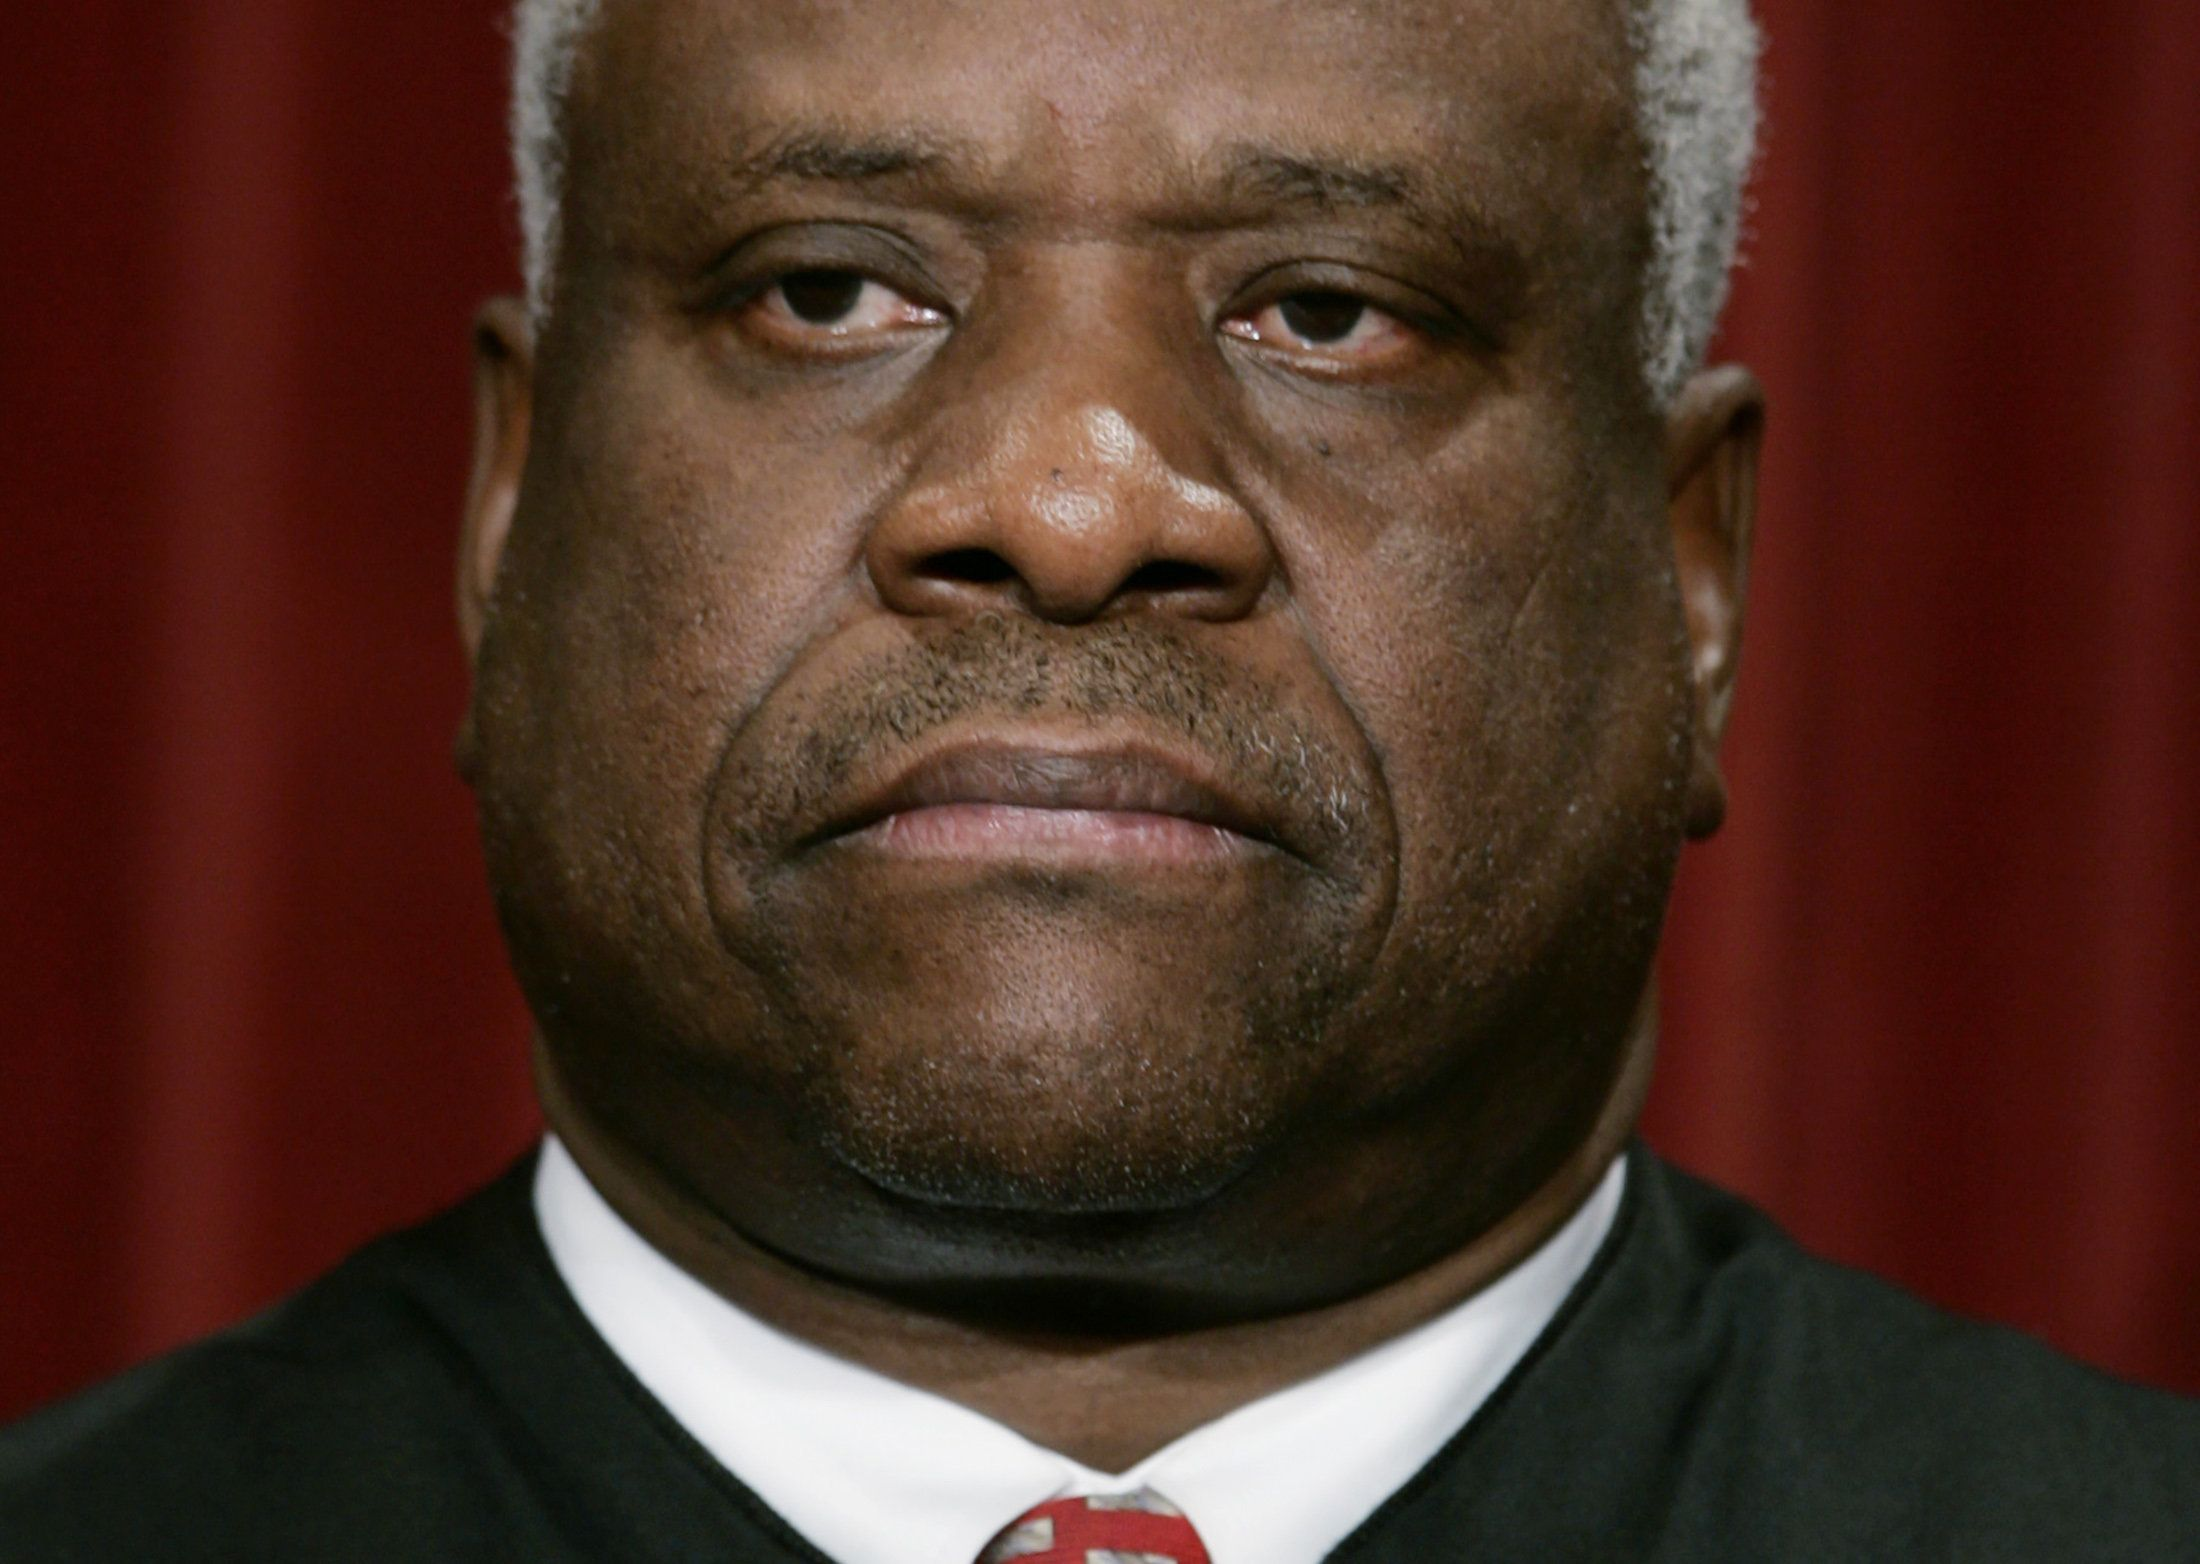 U.S. Supreme Court Justice Clarence Thomas Accused Of Groping Female